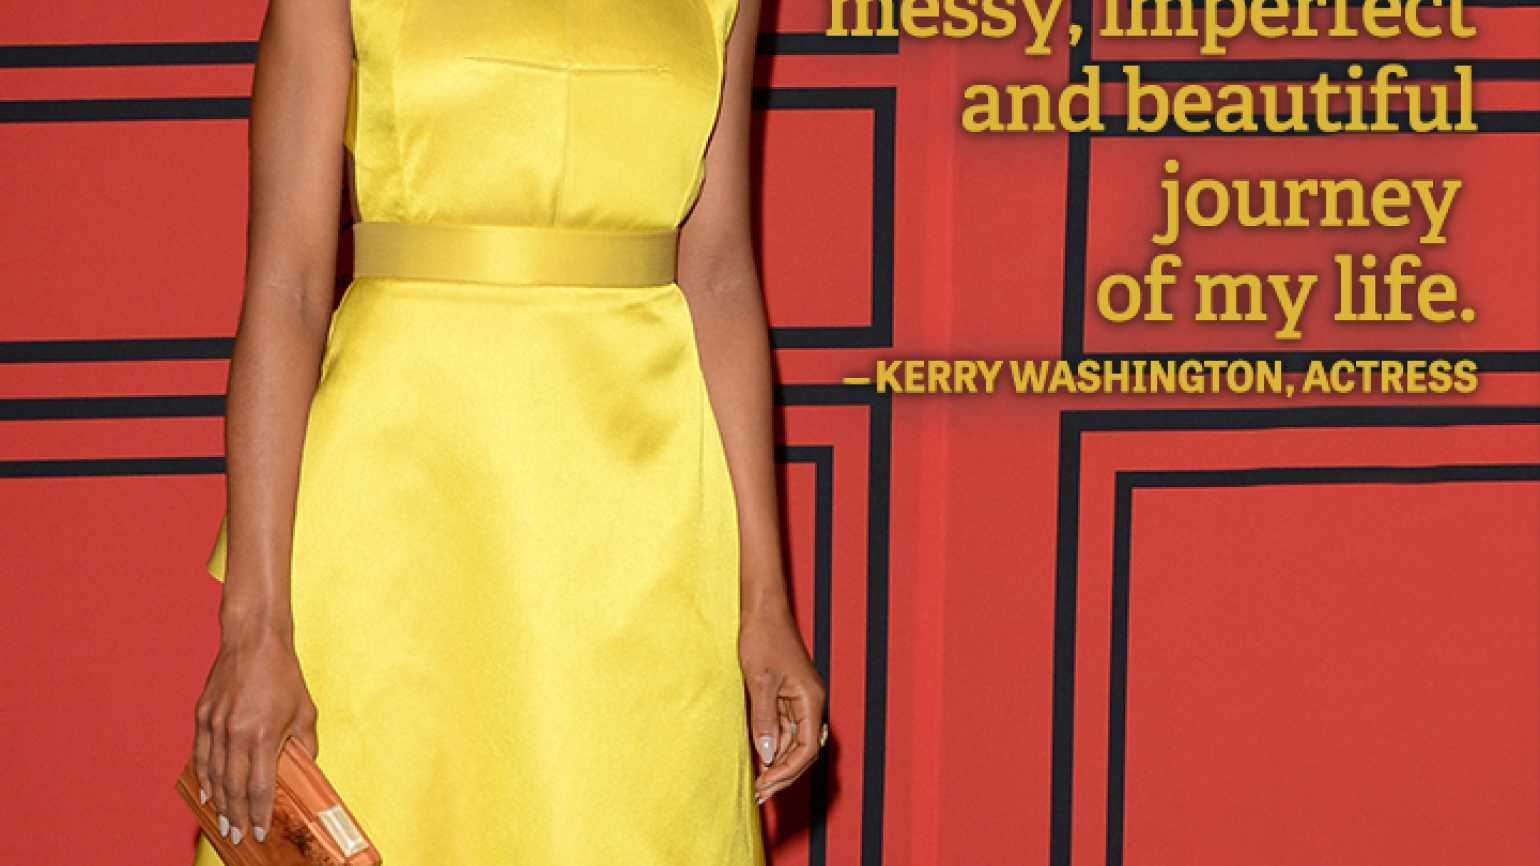 Positive Quote_Kerry Washington messy imperfect life